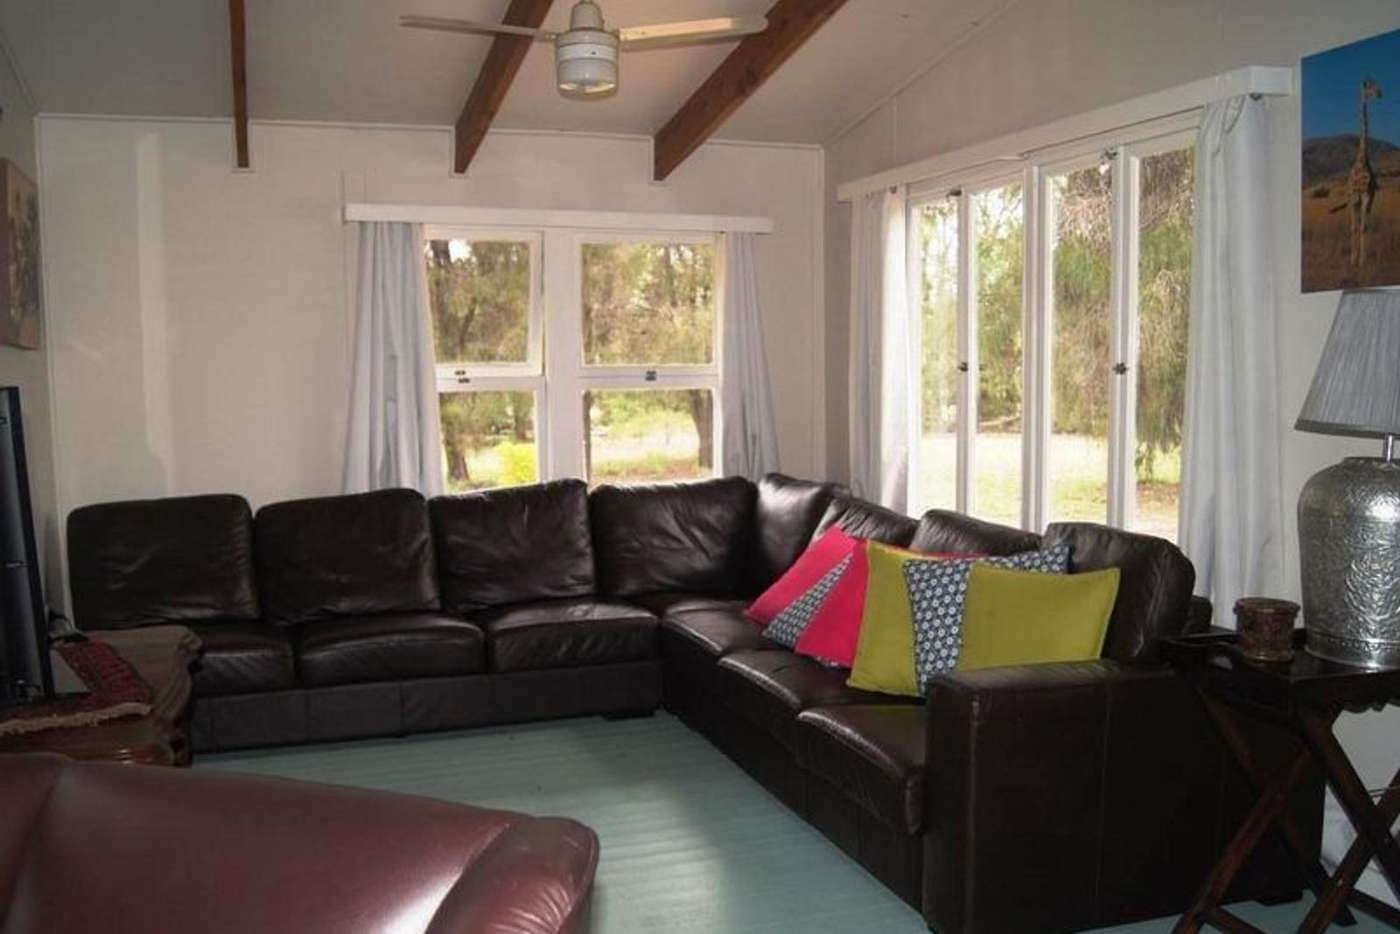 Sixth view of Homely house listing, 122 Carmichael Street, Chinchilla QLD 4413